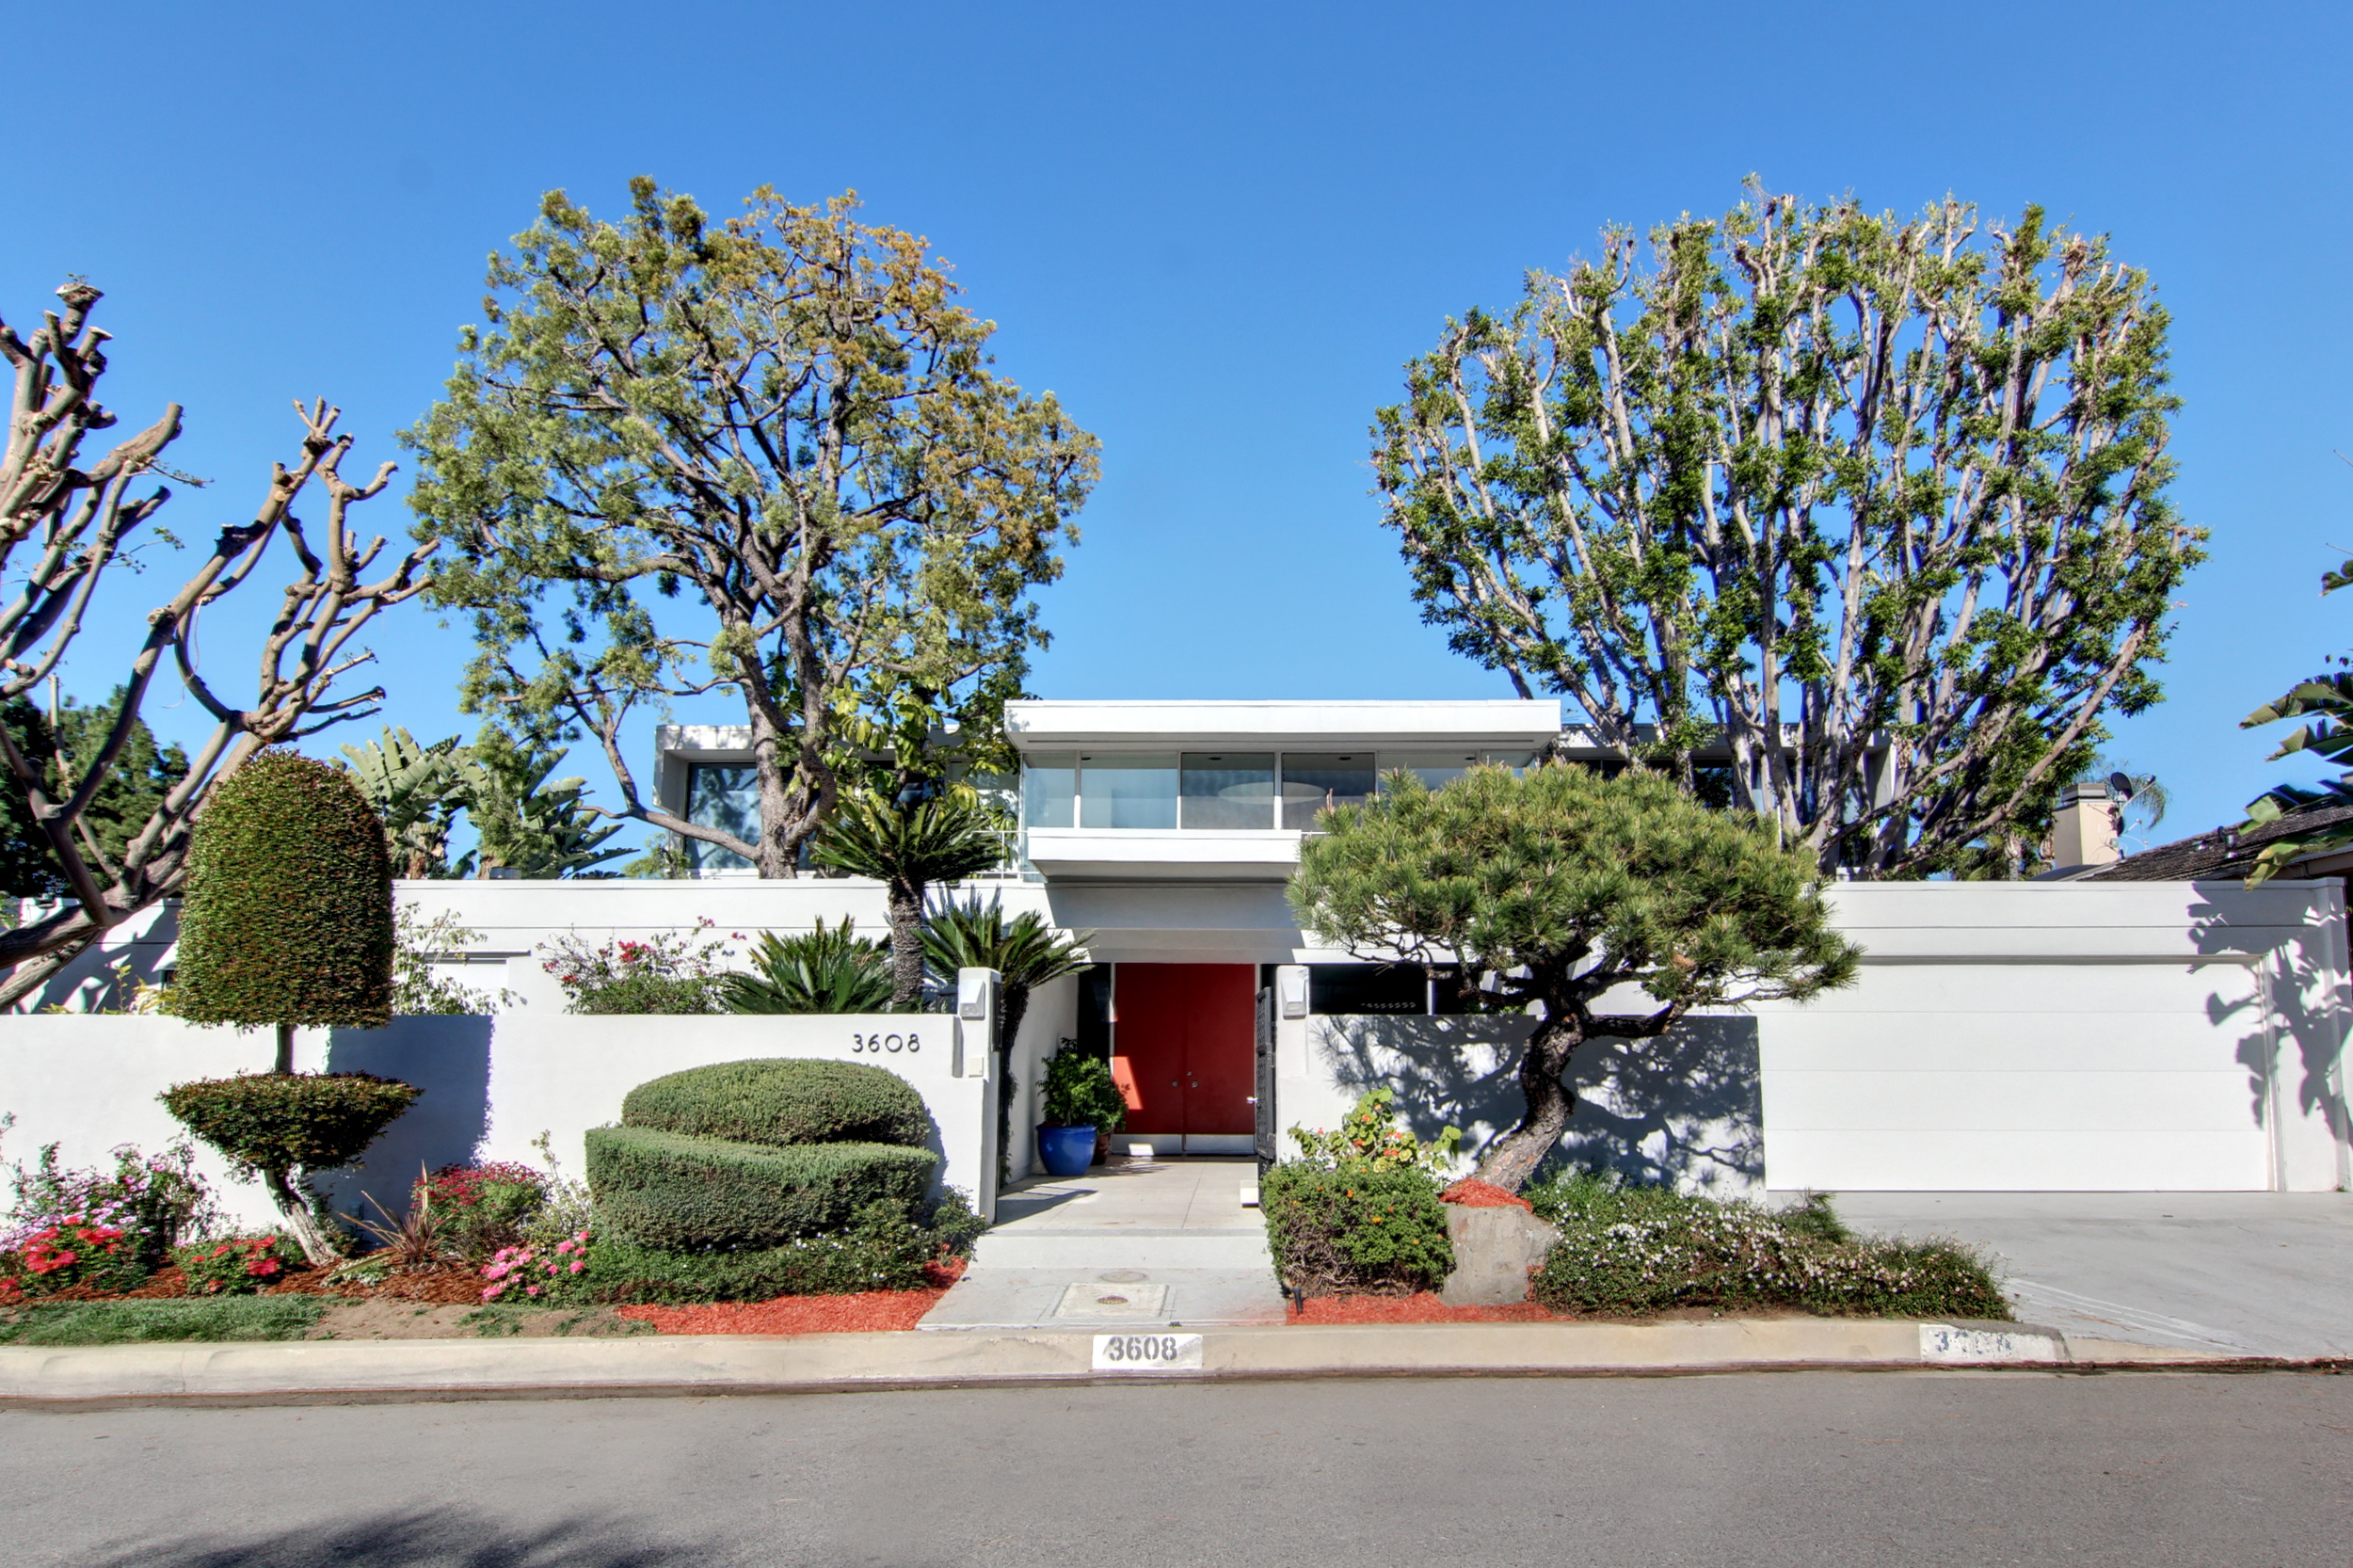 Entry to Neutra-inspired home with landscape done by Pearl